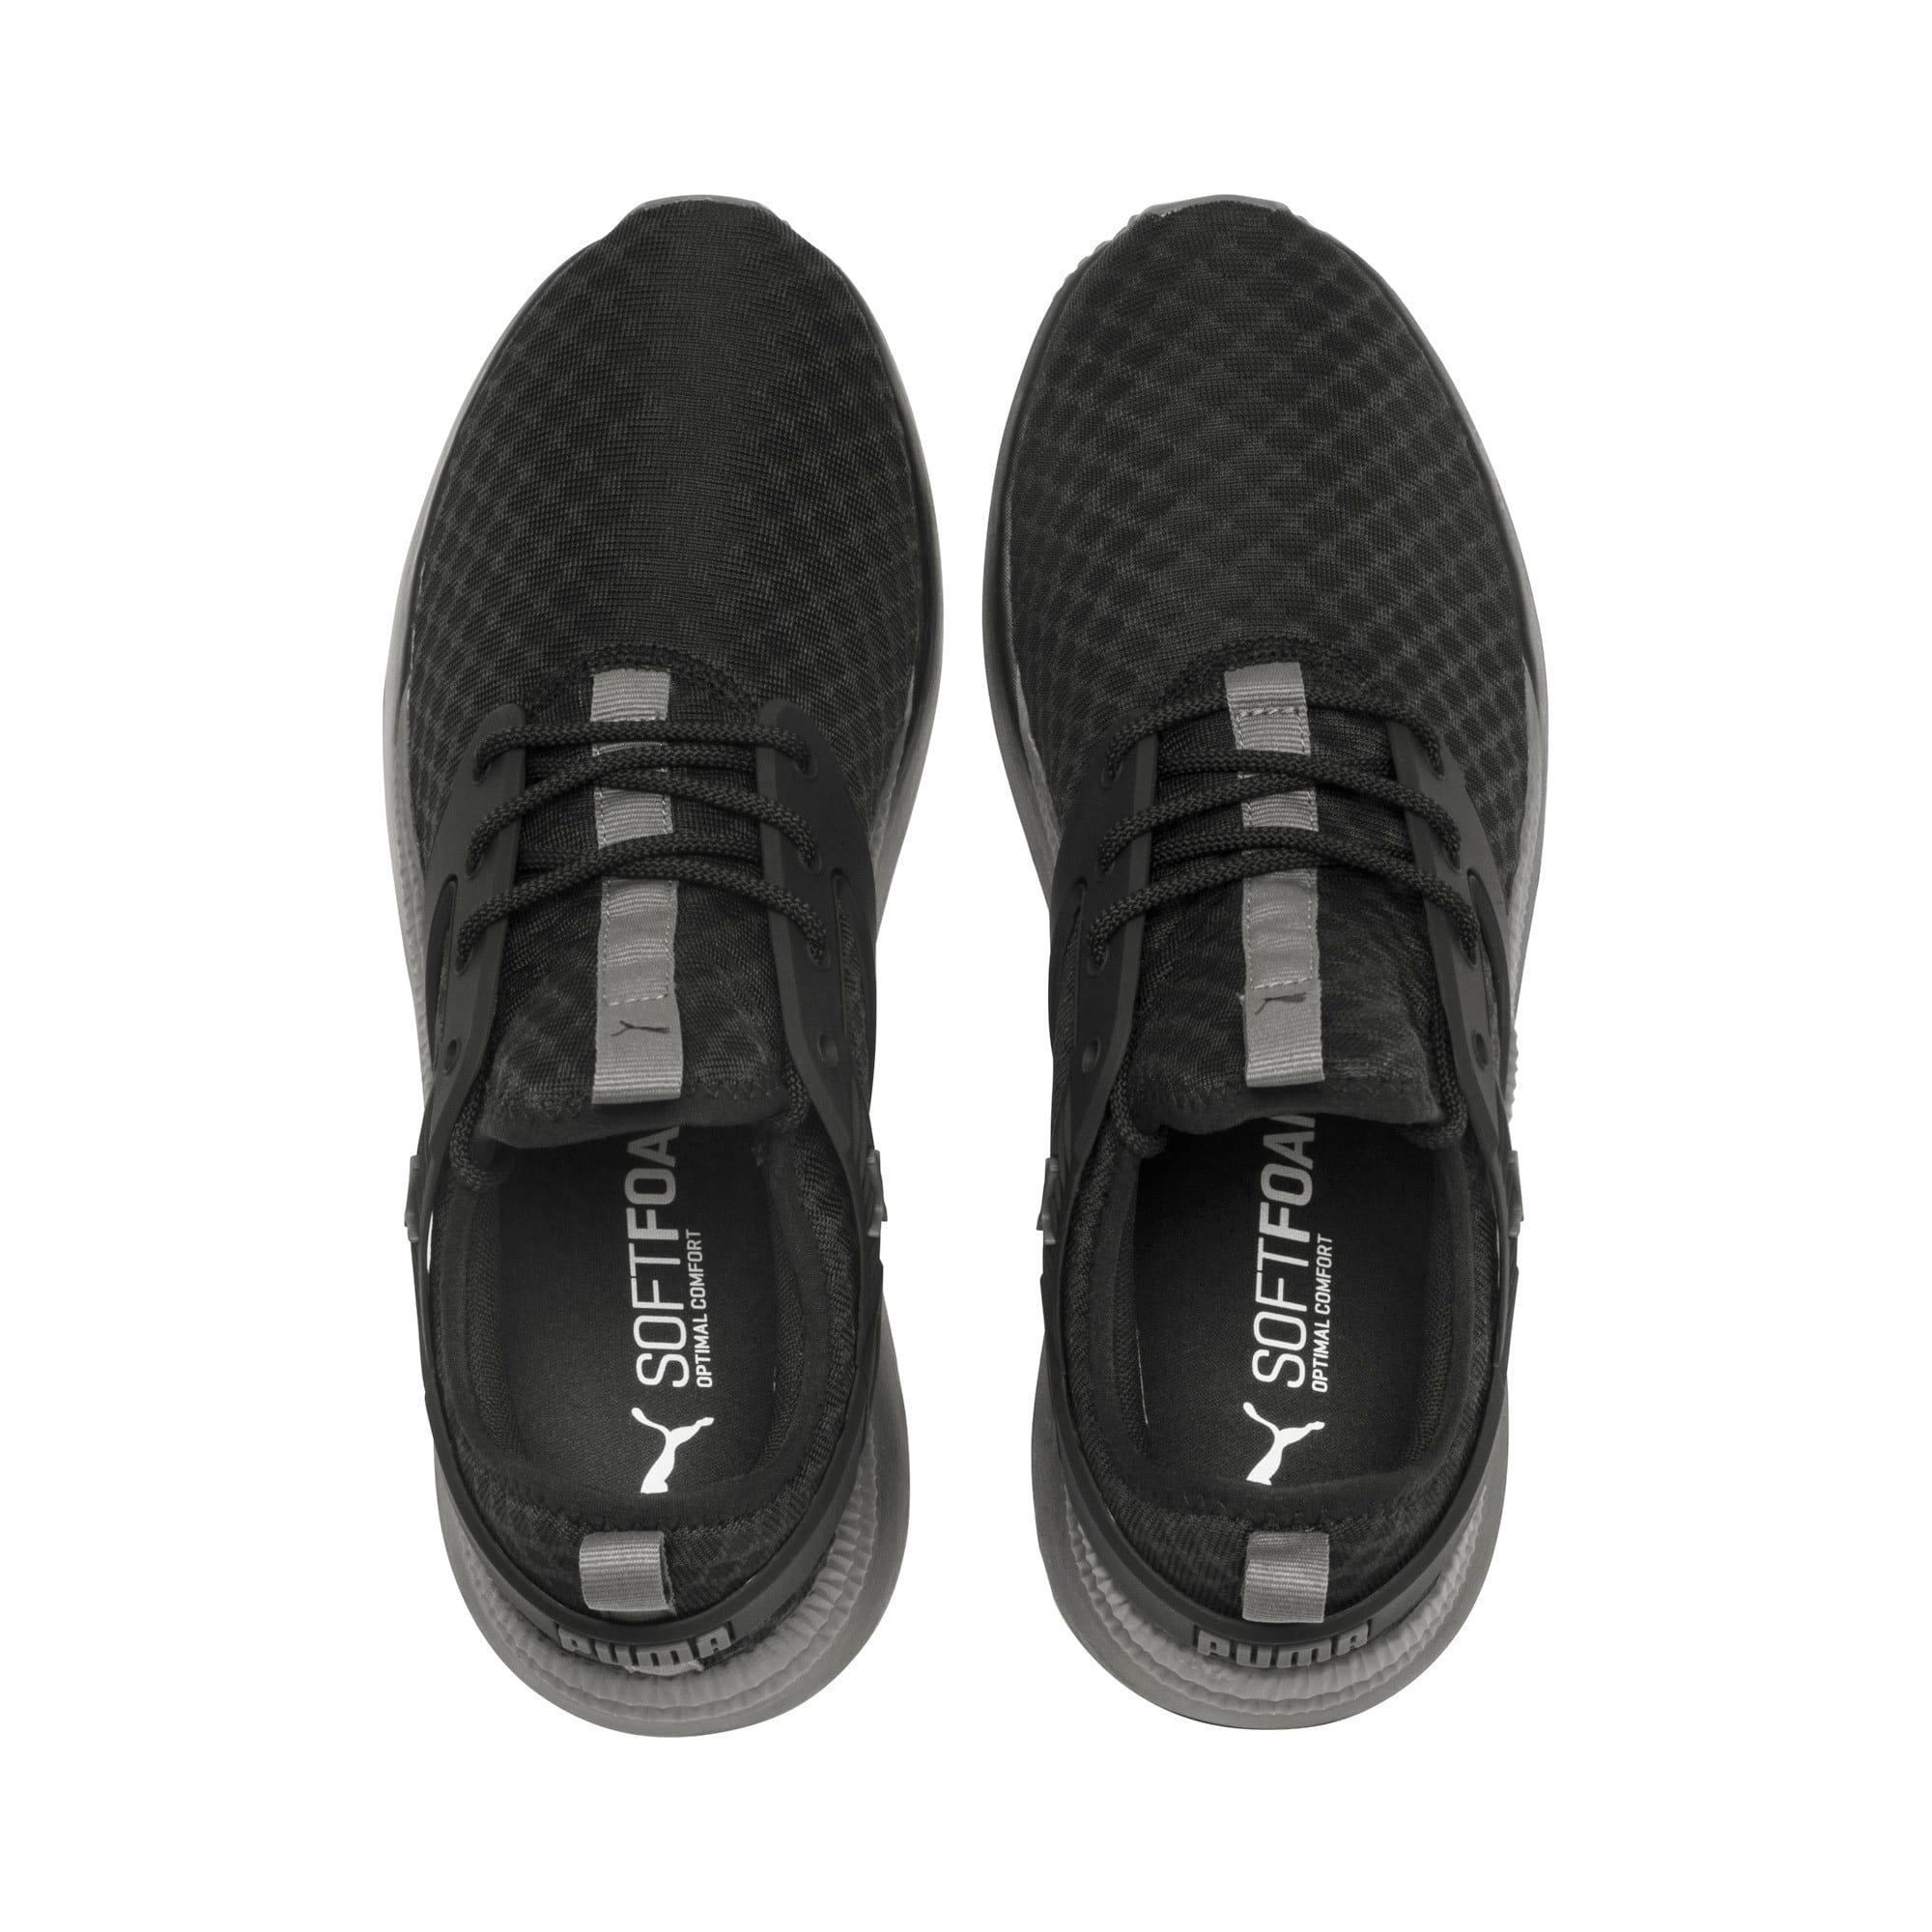 Thumbnail 7 of Chaussure de course Pacer Next Excel, Puma Black-Charcoal Gray, medium